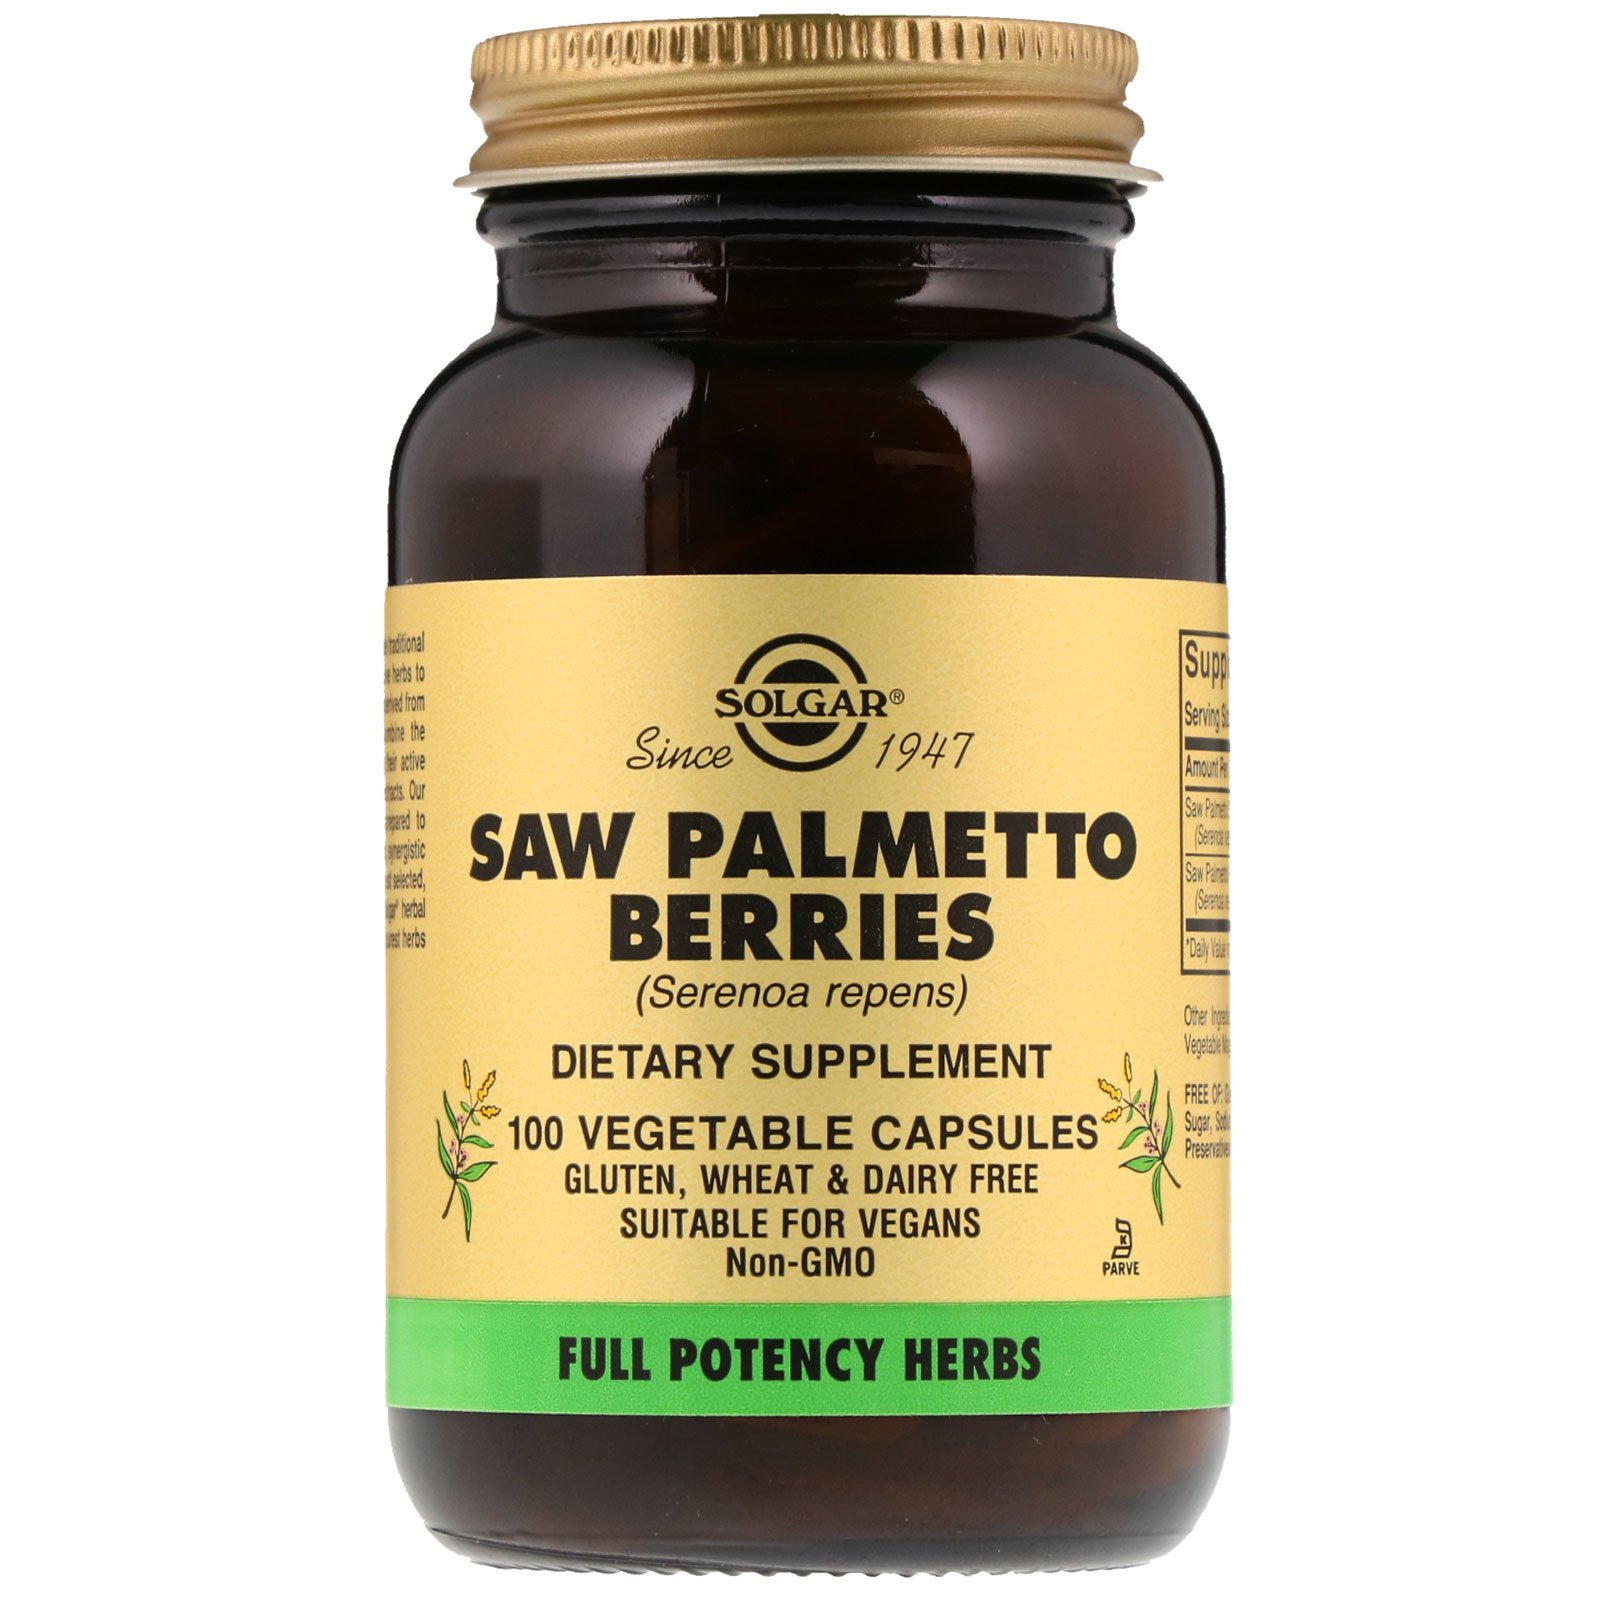 Со Пальметто, Saw Palmetto Berries, Solgar, ягоди, 100 капсул